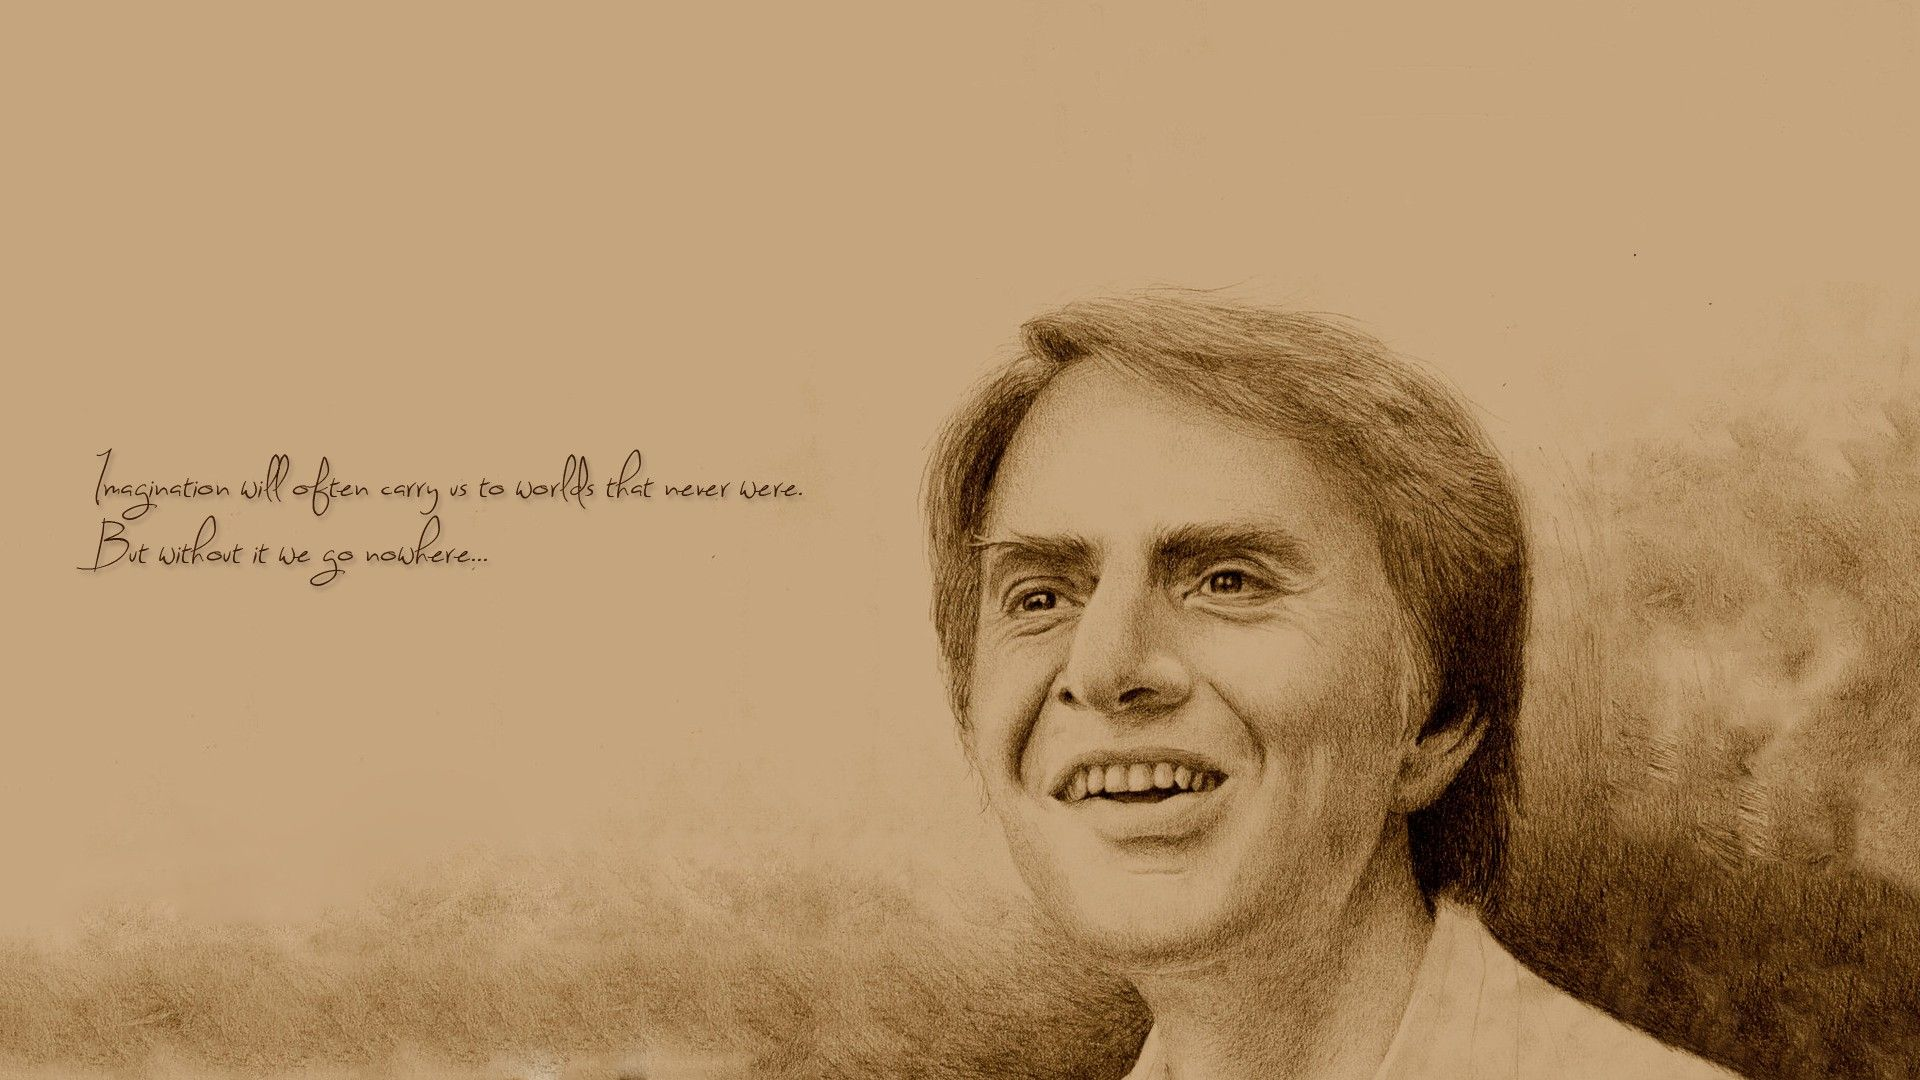 Quotes Carl Sagan Science #quotes #wallpapers